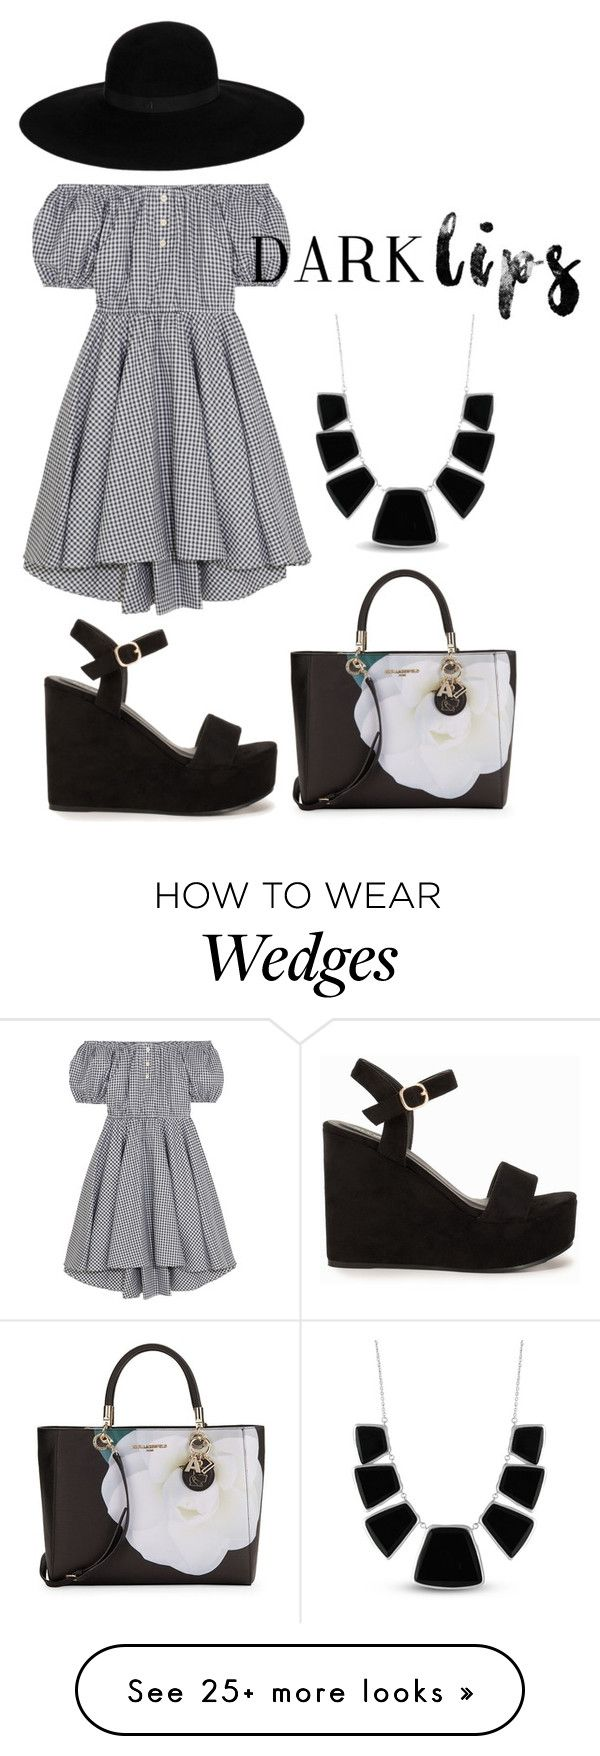 """fgfhfc by nana"" by zozanazozane on Polyvore featuring Caroline Constas, Nly Shoes, Karl Lagerfeld, Maison Michel and Karen Kane"